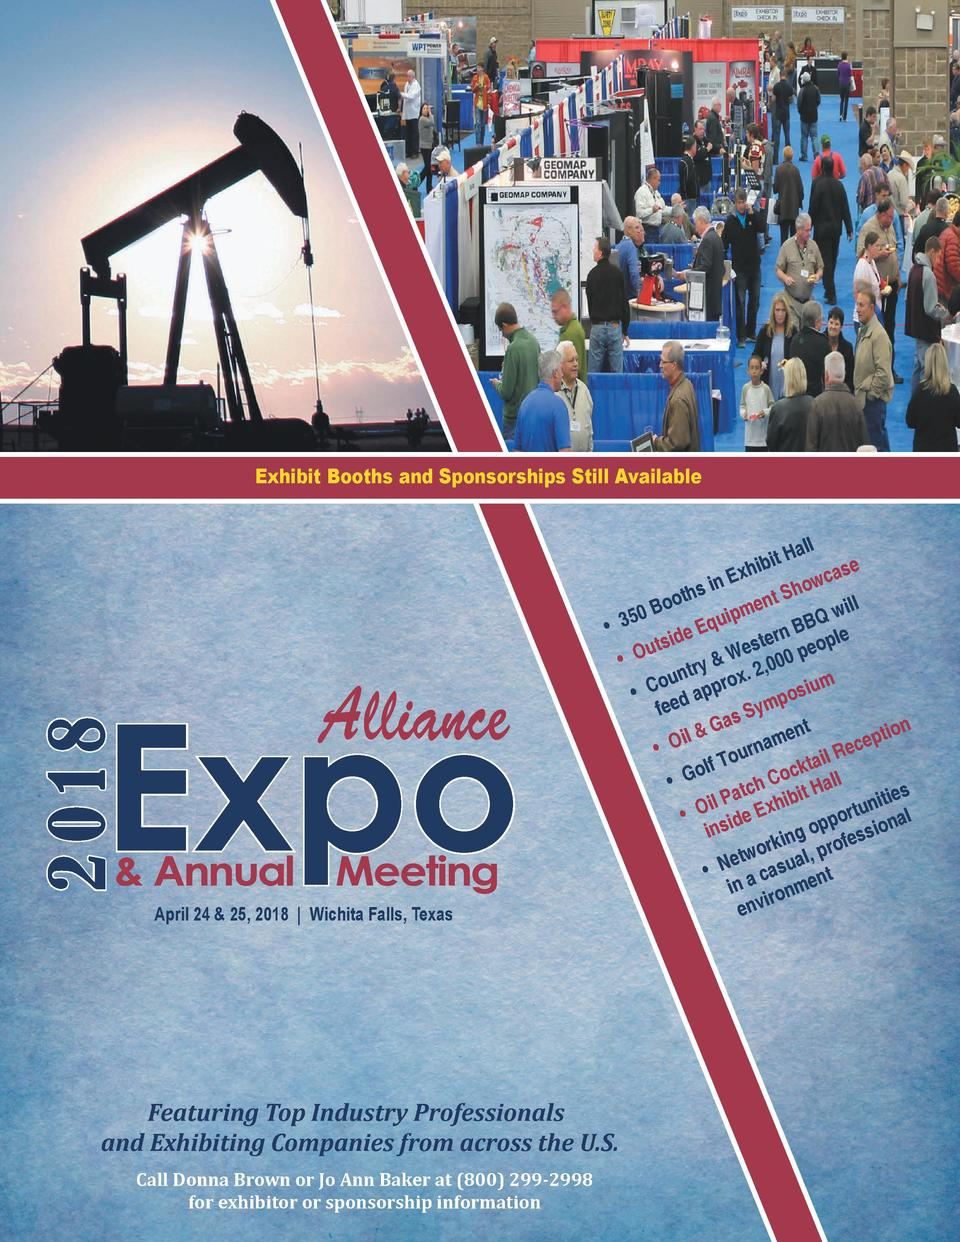 Exhibit Booths and Sponsorships Still Available  2018  Expo Alliance    Annual Meeting April 24   25, 2018   Wichita Falls...